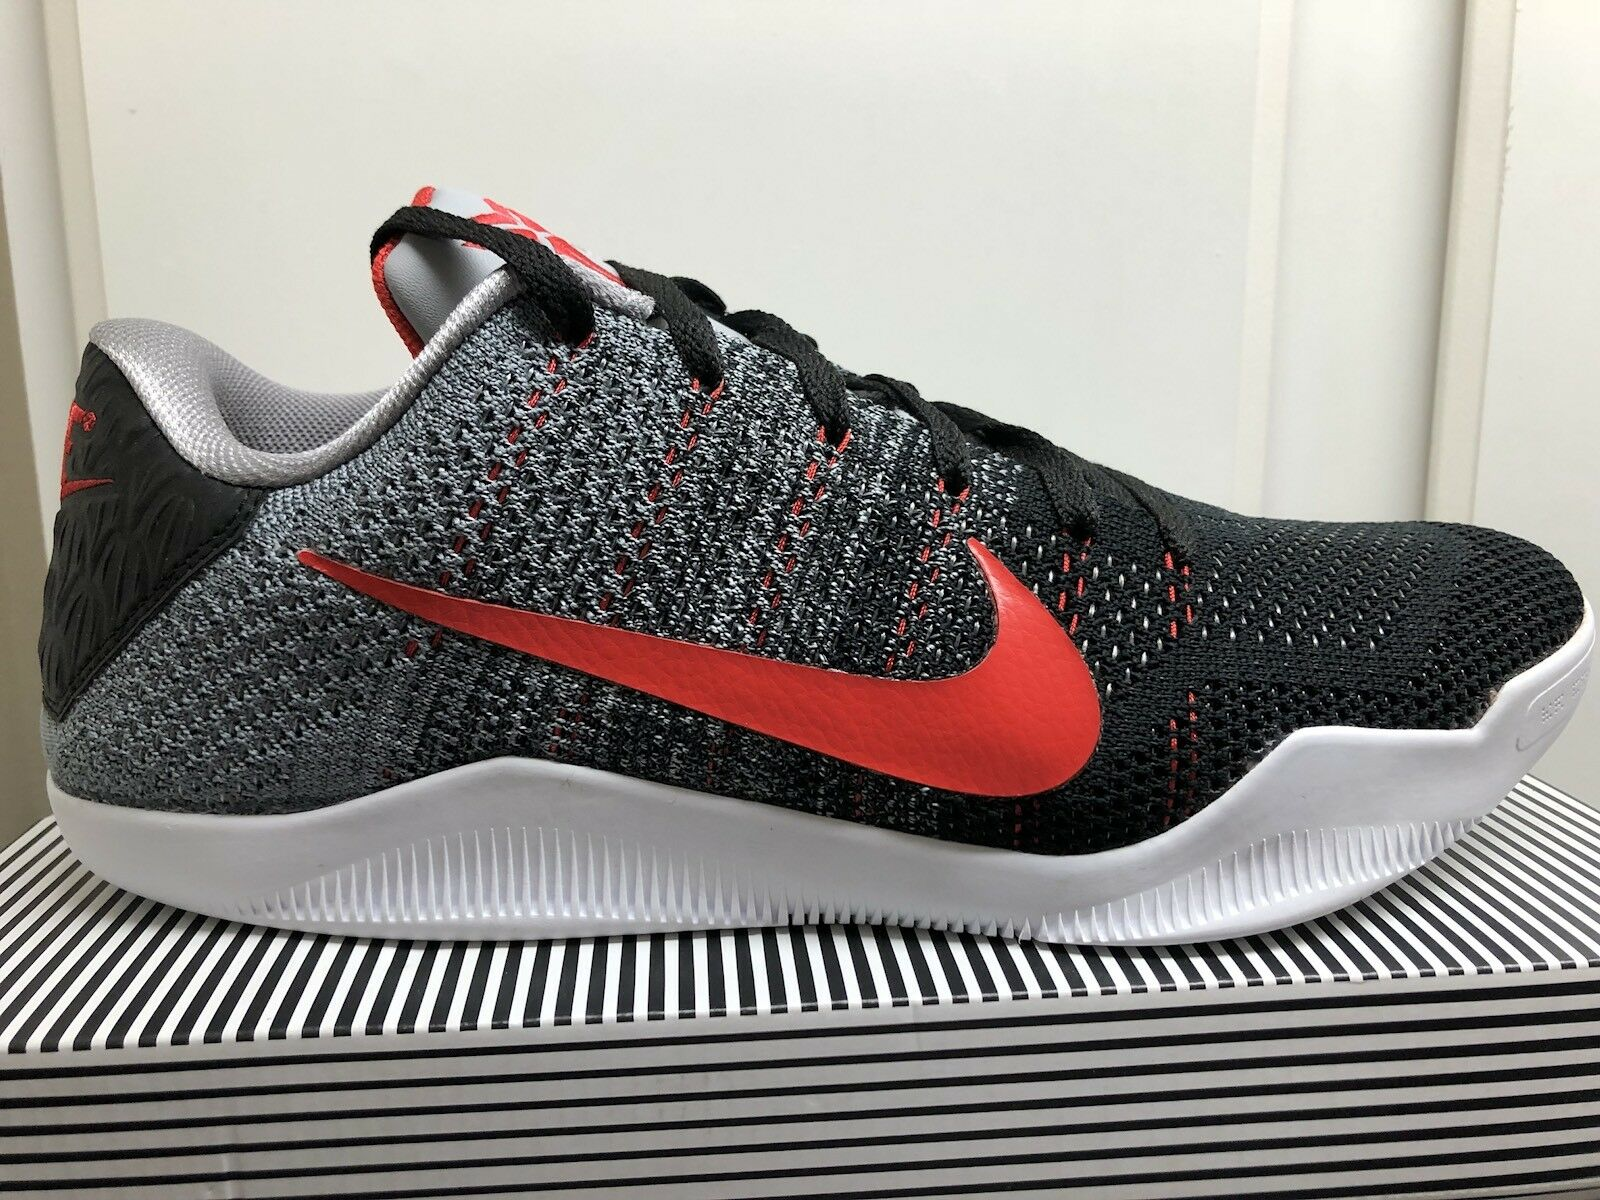 reputable site 76b80 bd7dc Kobe 11 tinker muse 1 2 3 4 5 6 7 8 9 10 Jordan Retro